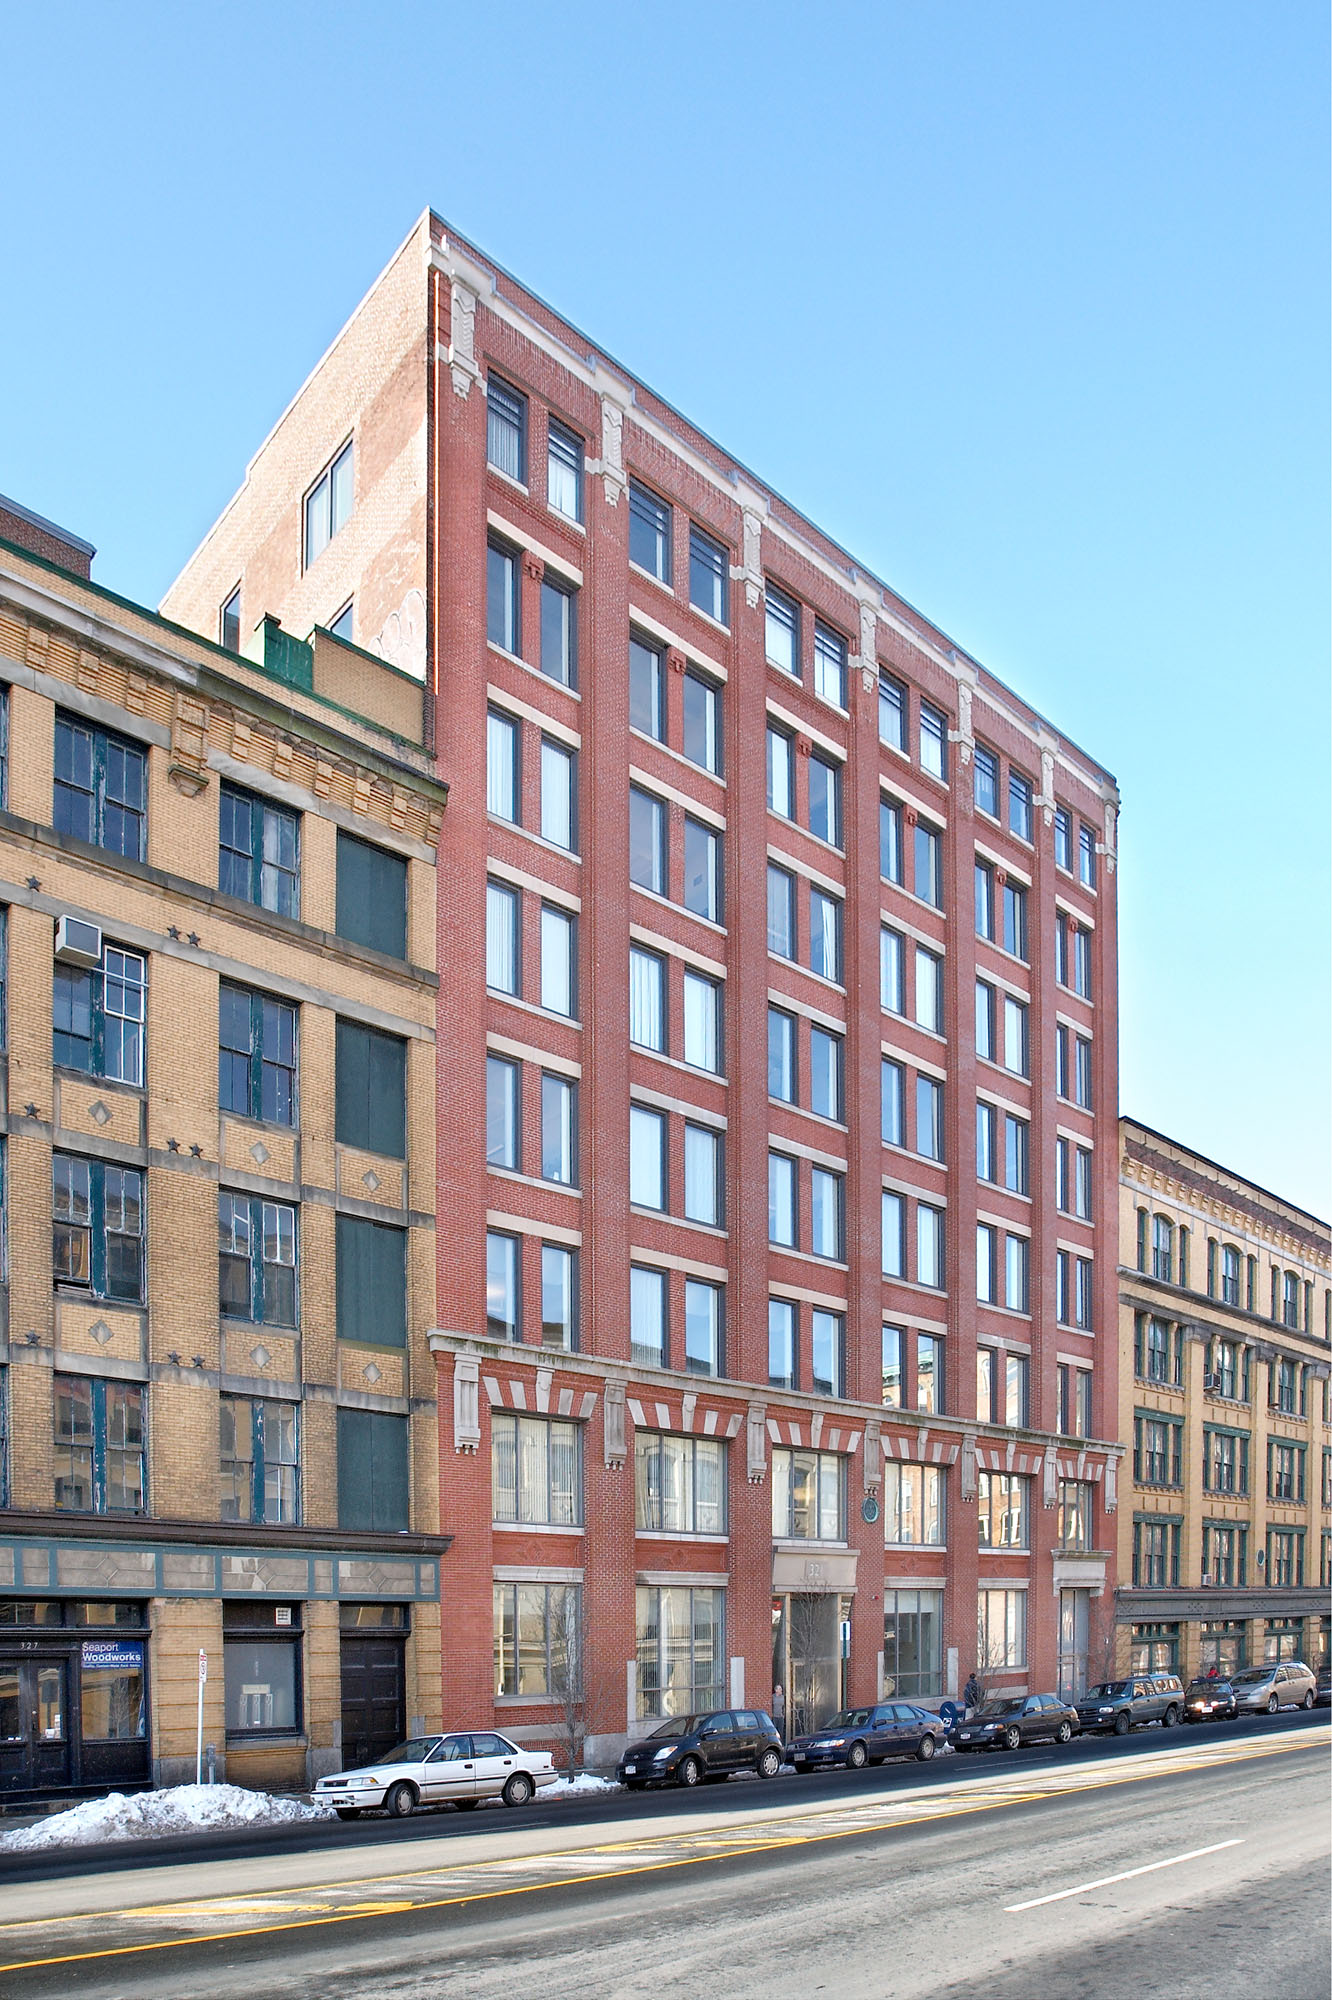 321 Summer St, Boston MA 03.jpg